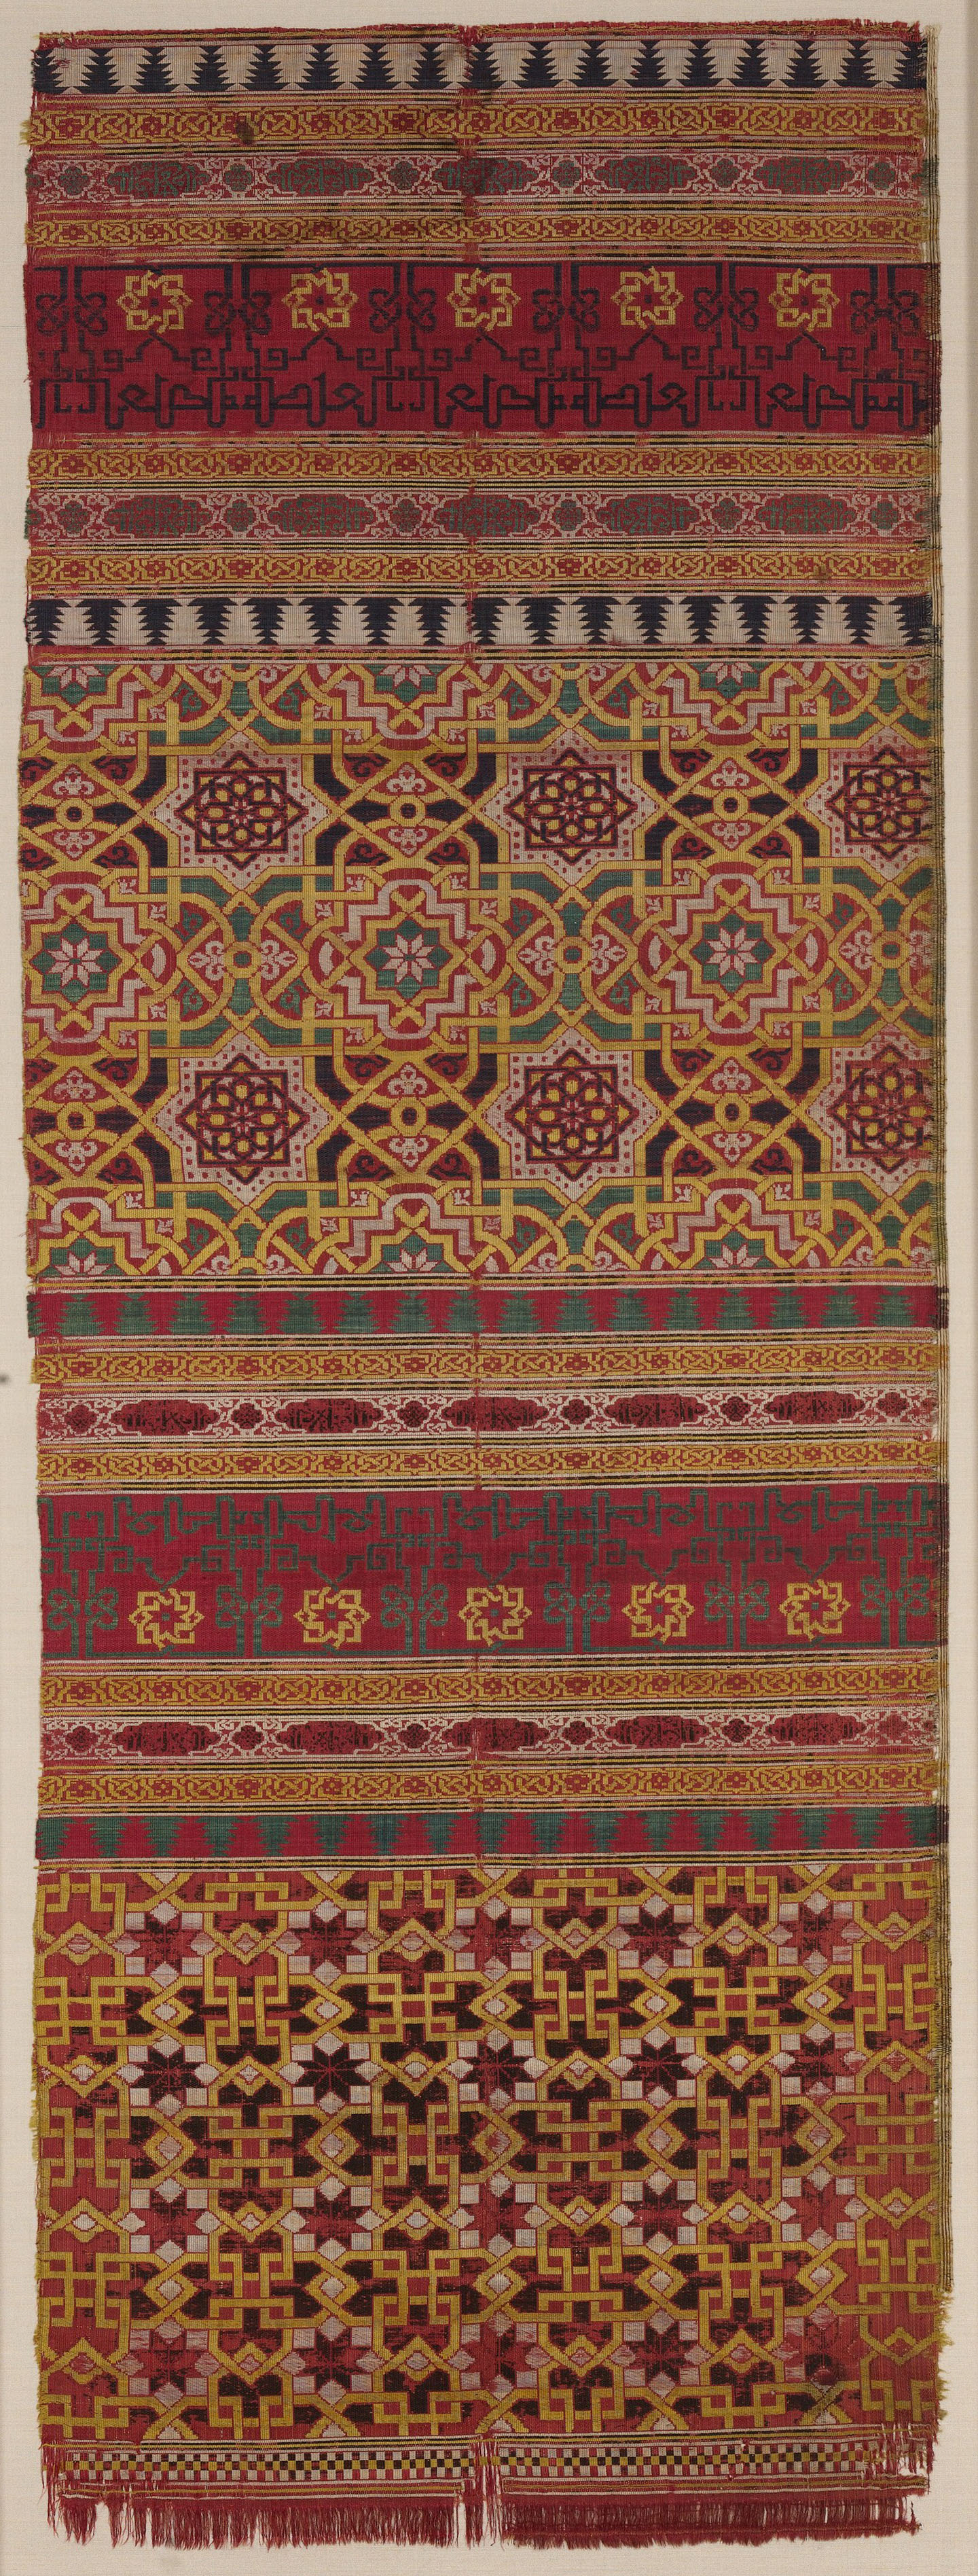 A textile woven with an intricate geometric pattern of yellow, purple, white and green